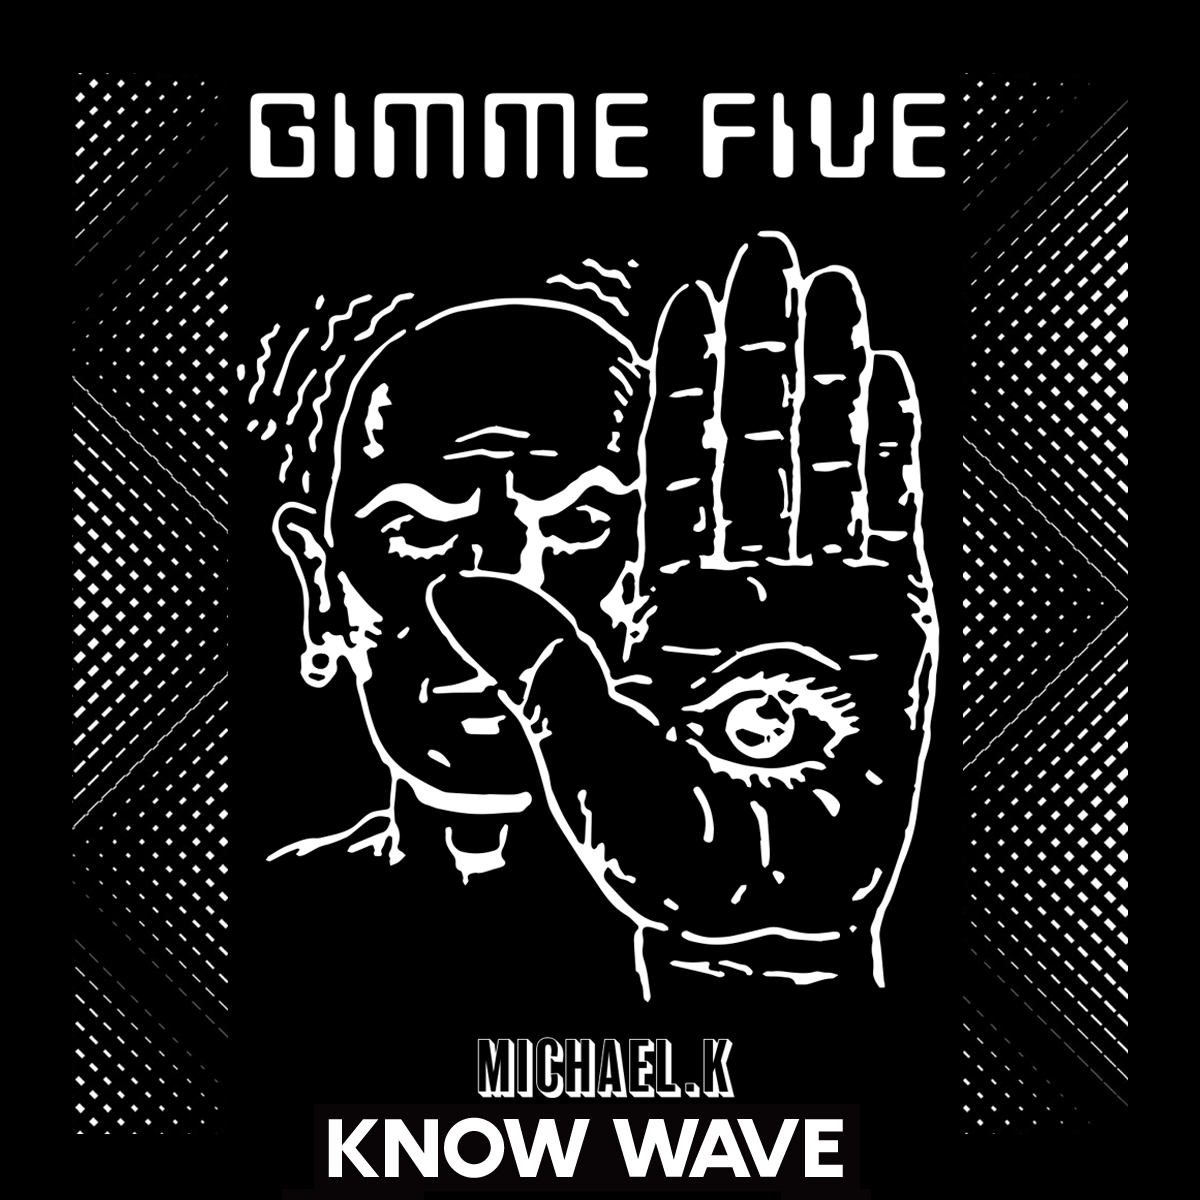 MICHEL K KNOW WAVE SHOWS